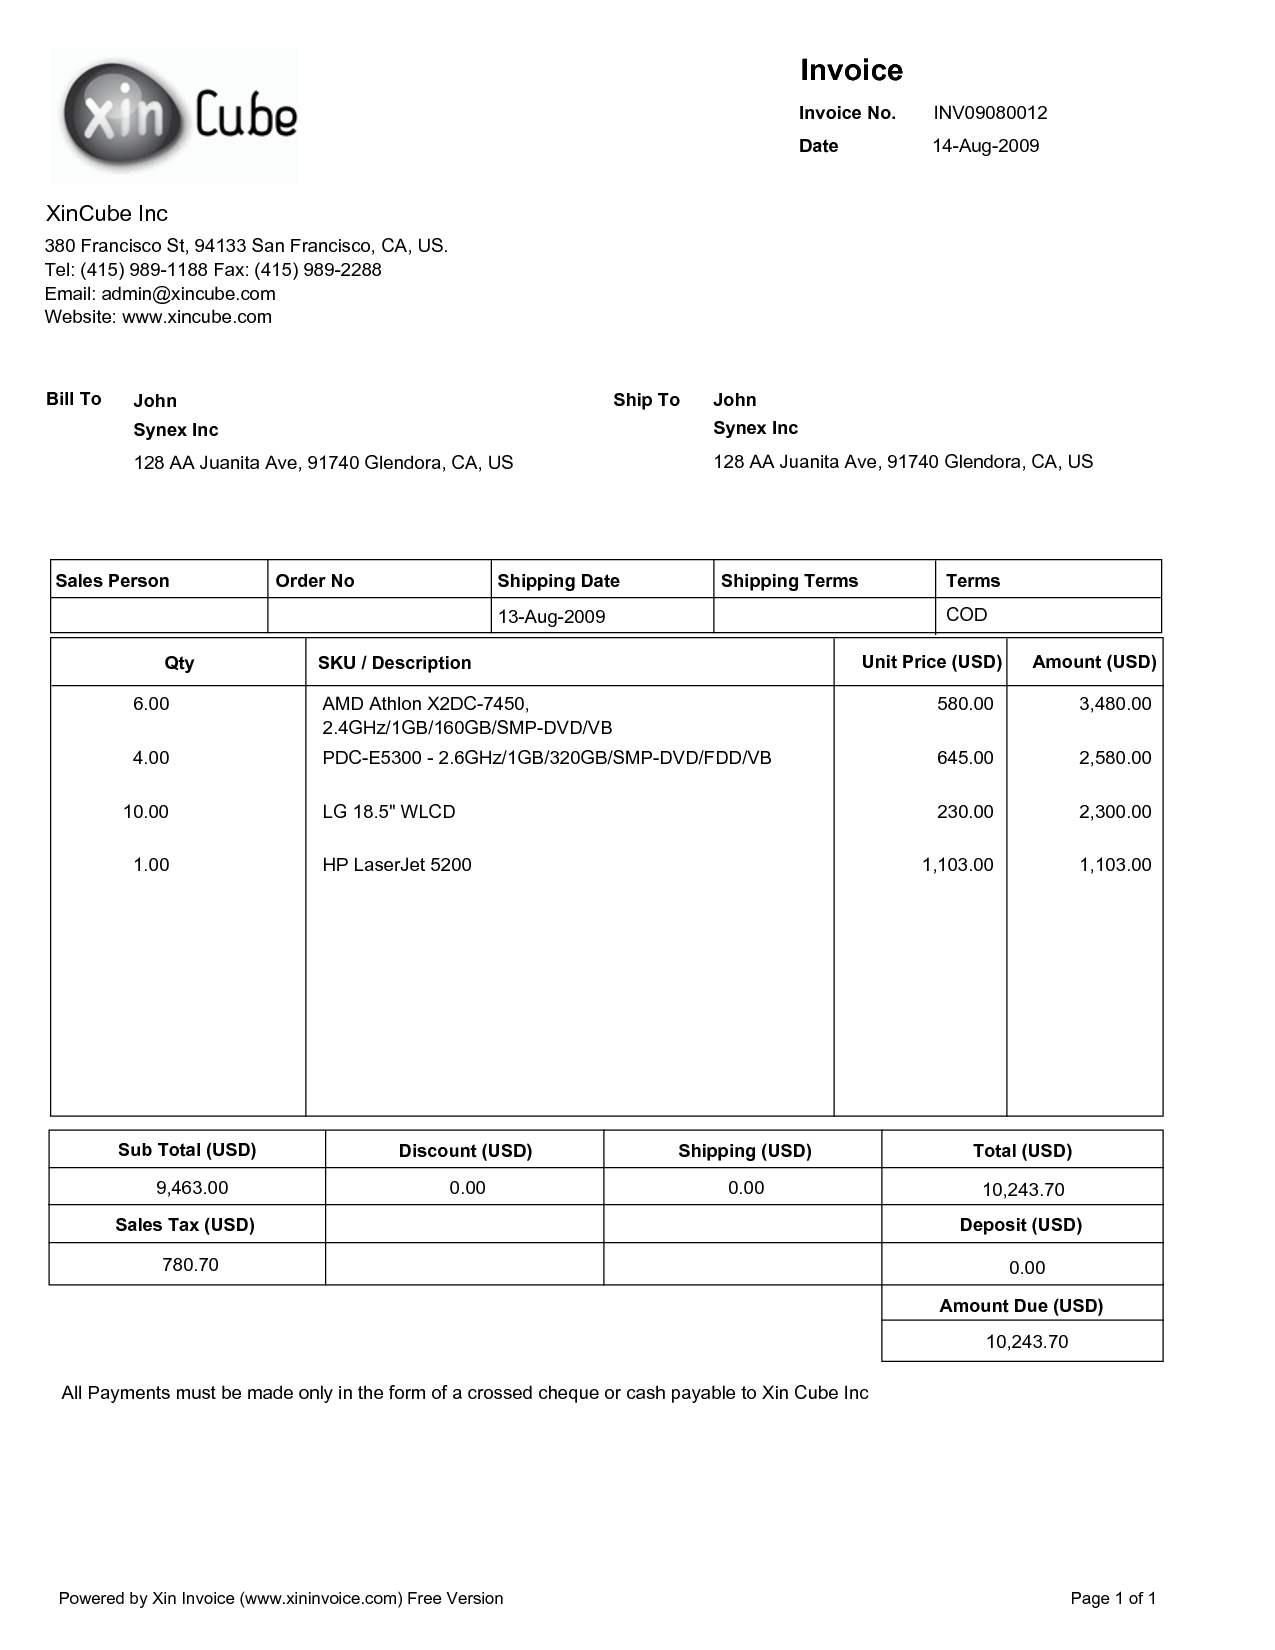 Bill Of Quantities Template and Invoice format Pdf Free Printable Invoice